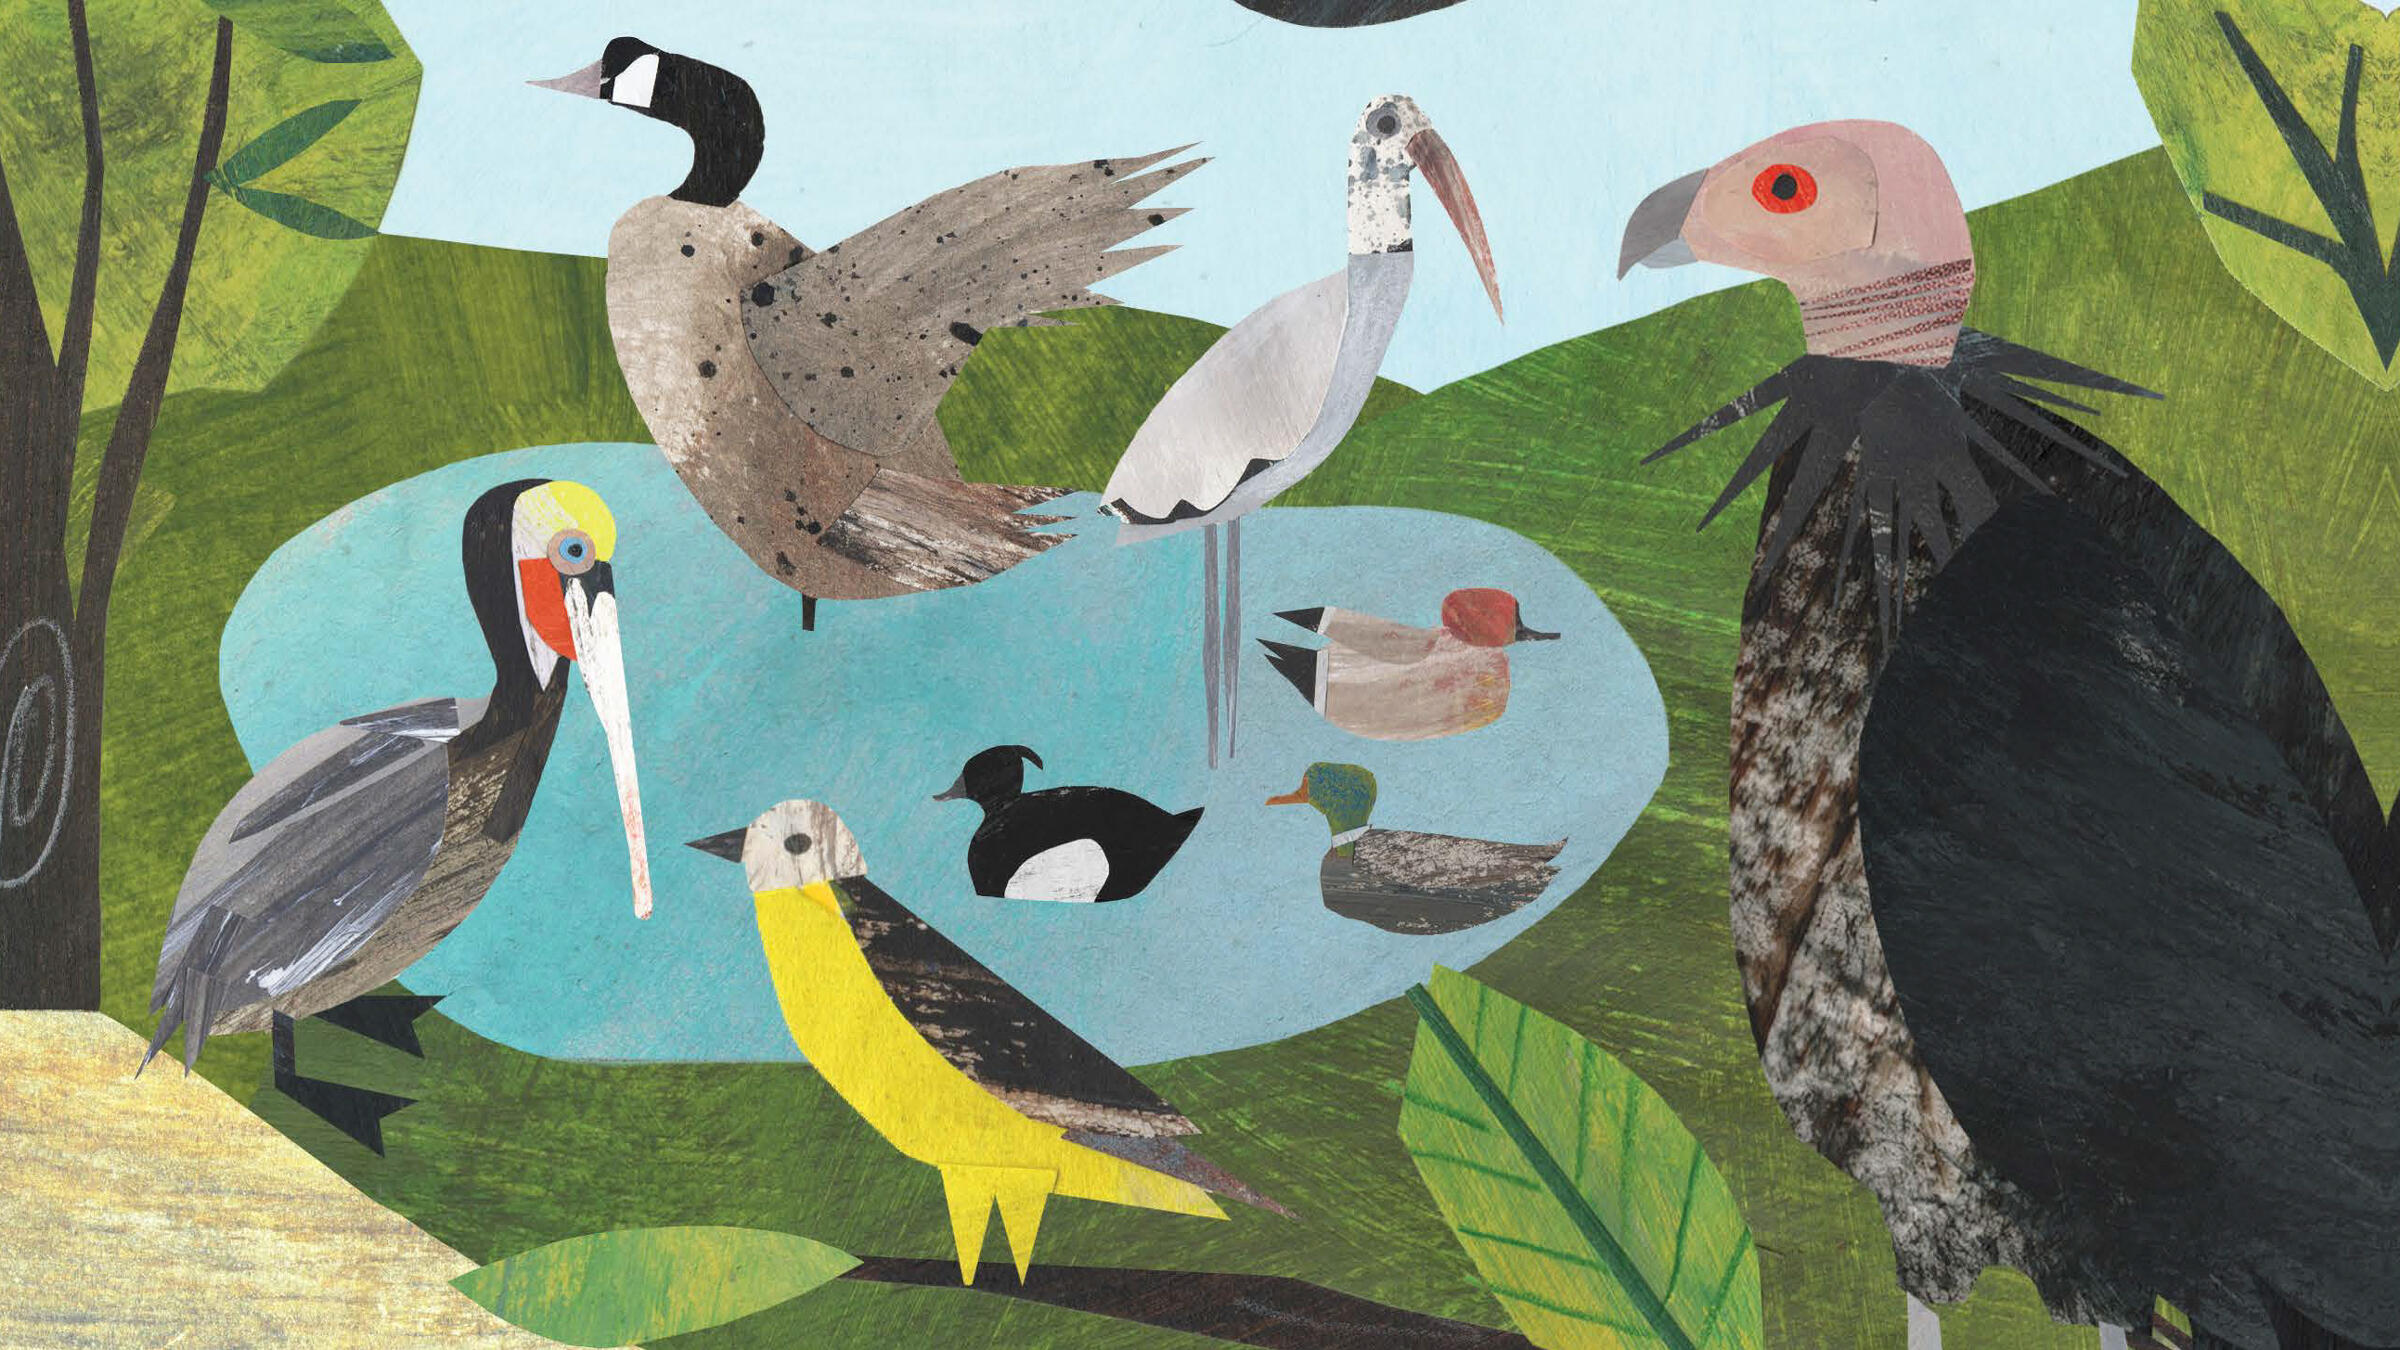 Spread from the book Counting Birds by Heidi E.Y. Stemple. Illustrated: Clover Robin